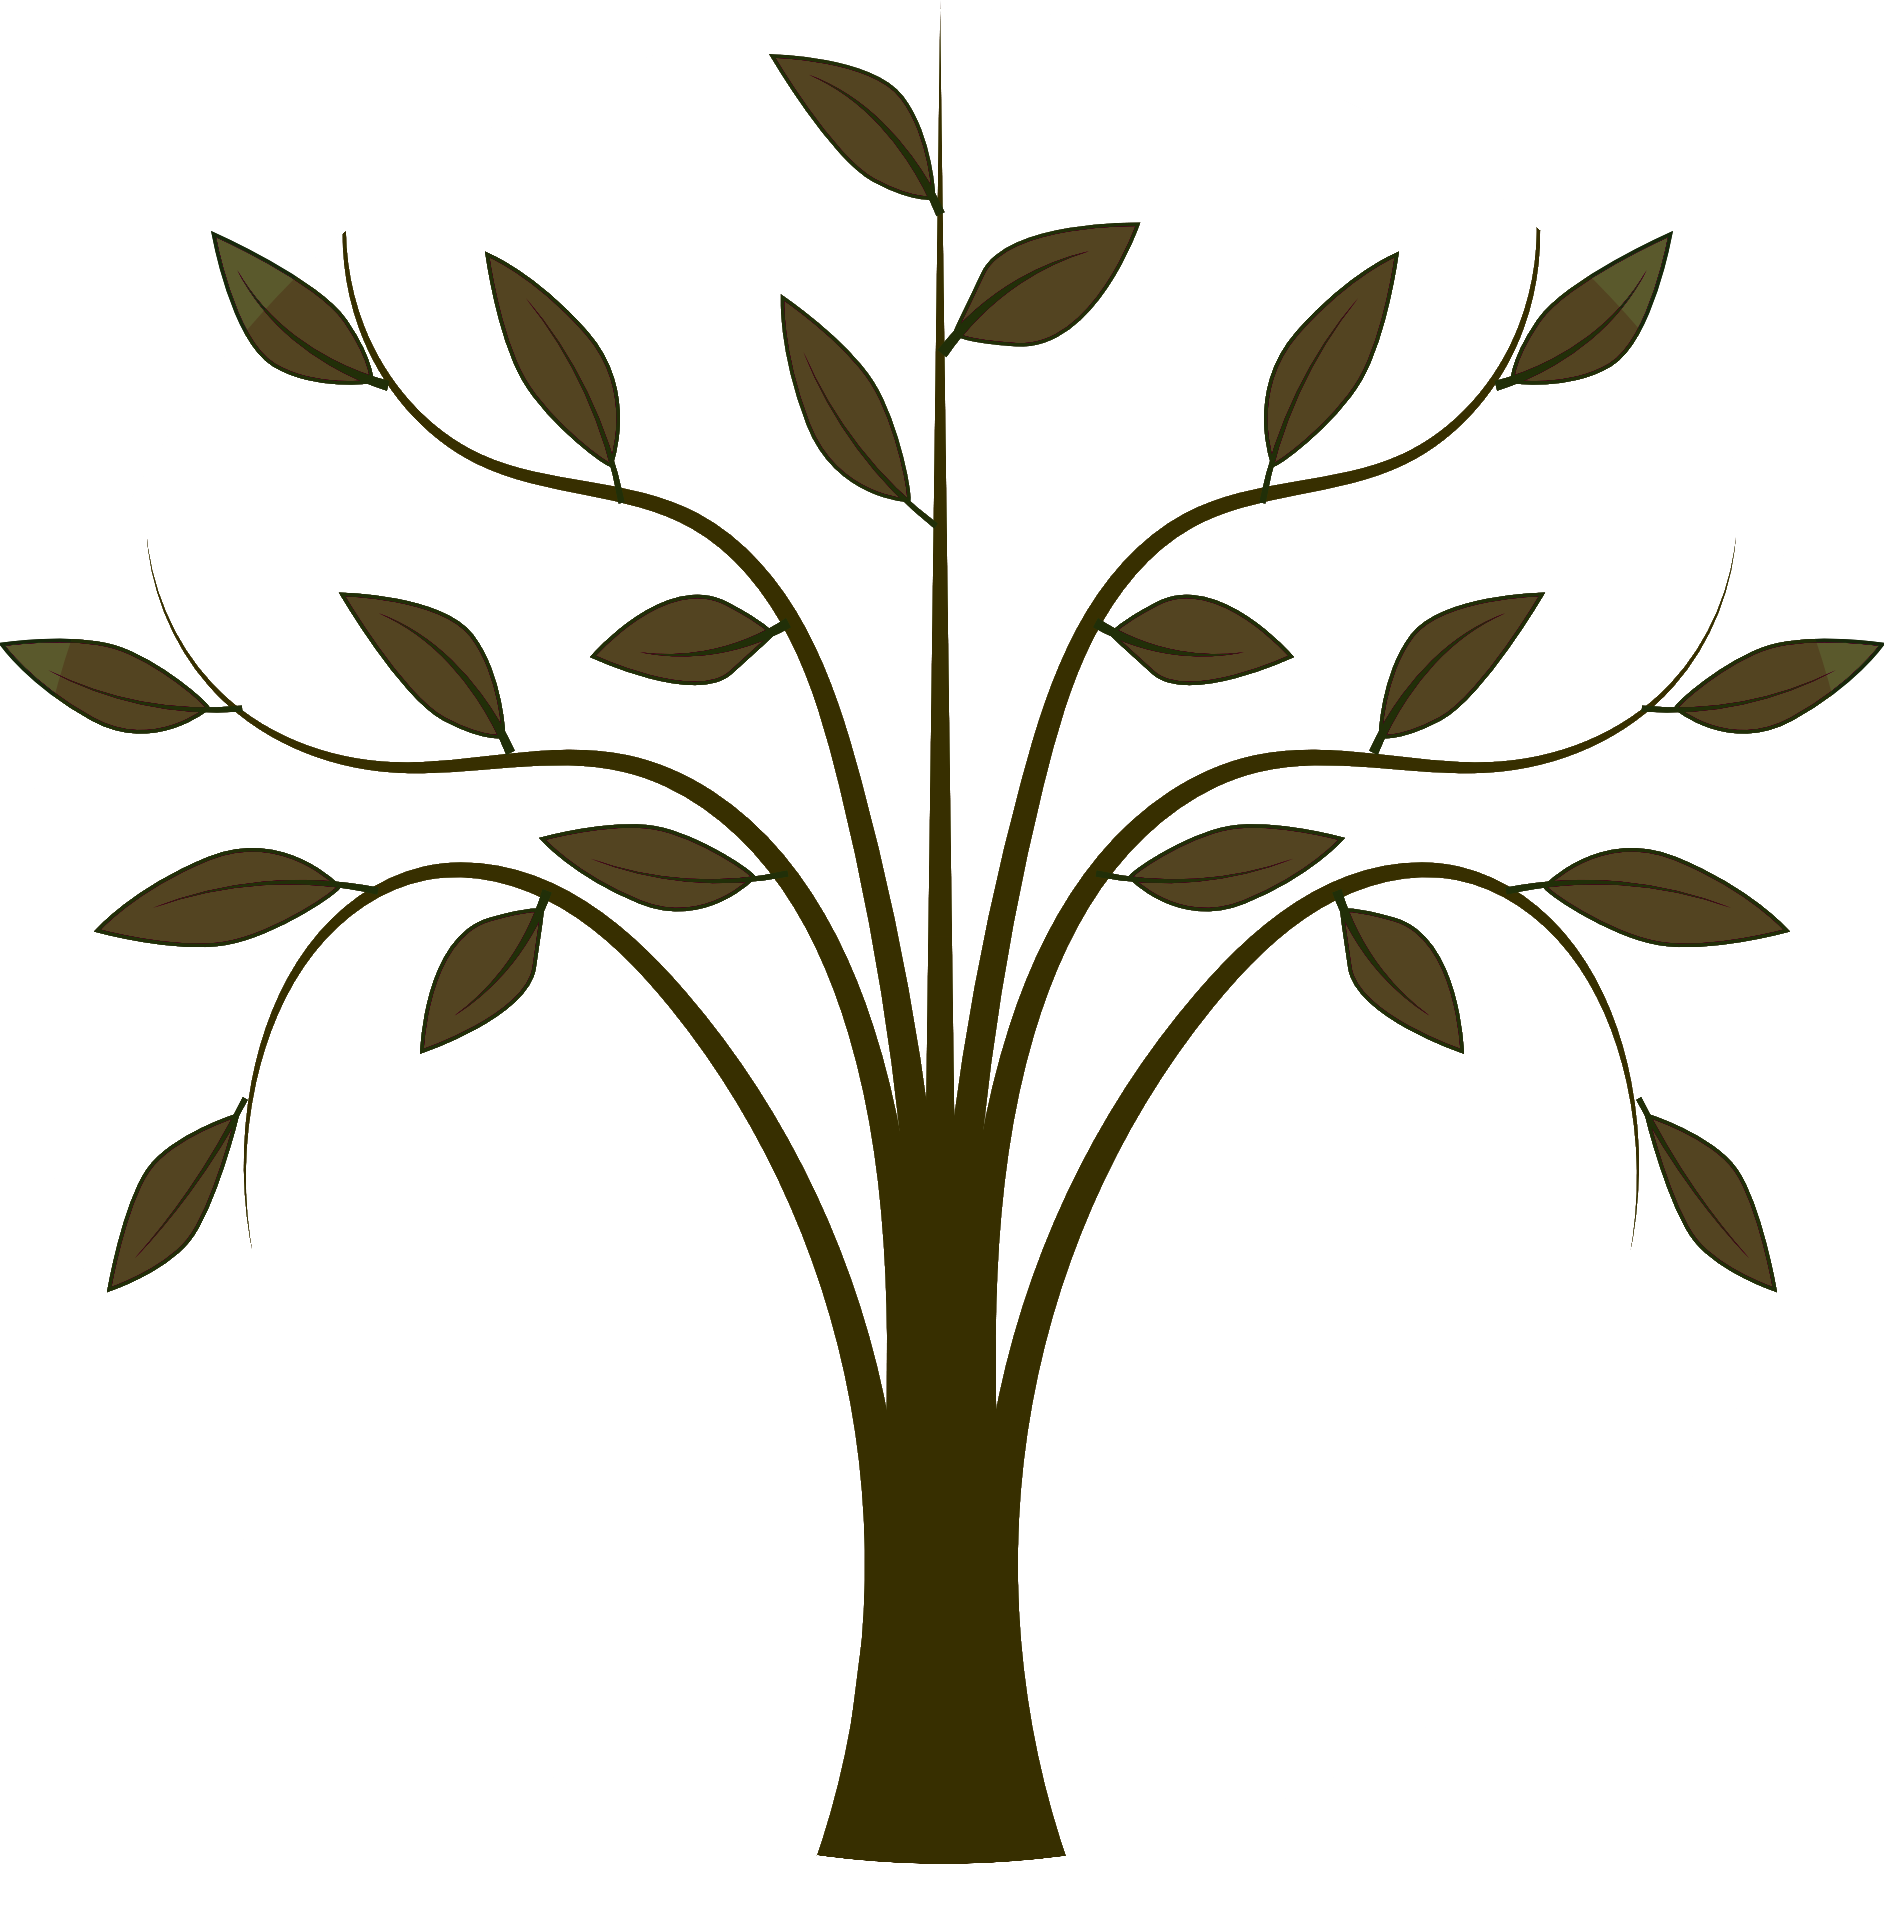 Tree of knowledge clipart clip art black and white library ATREE in news: April 2016 clip art black and white library